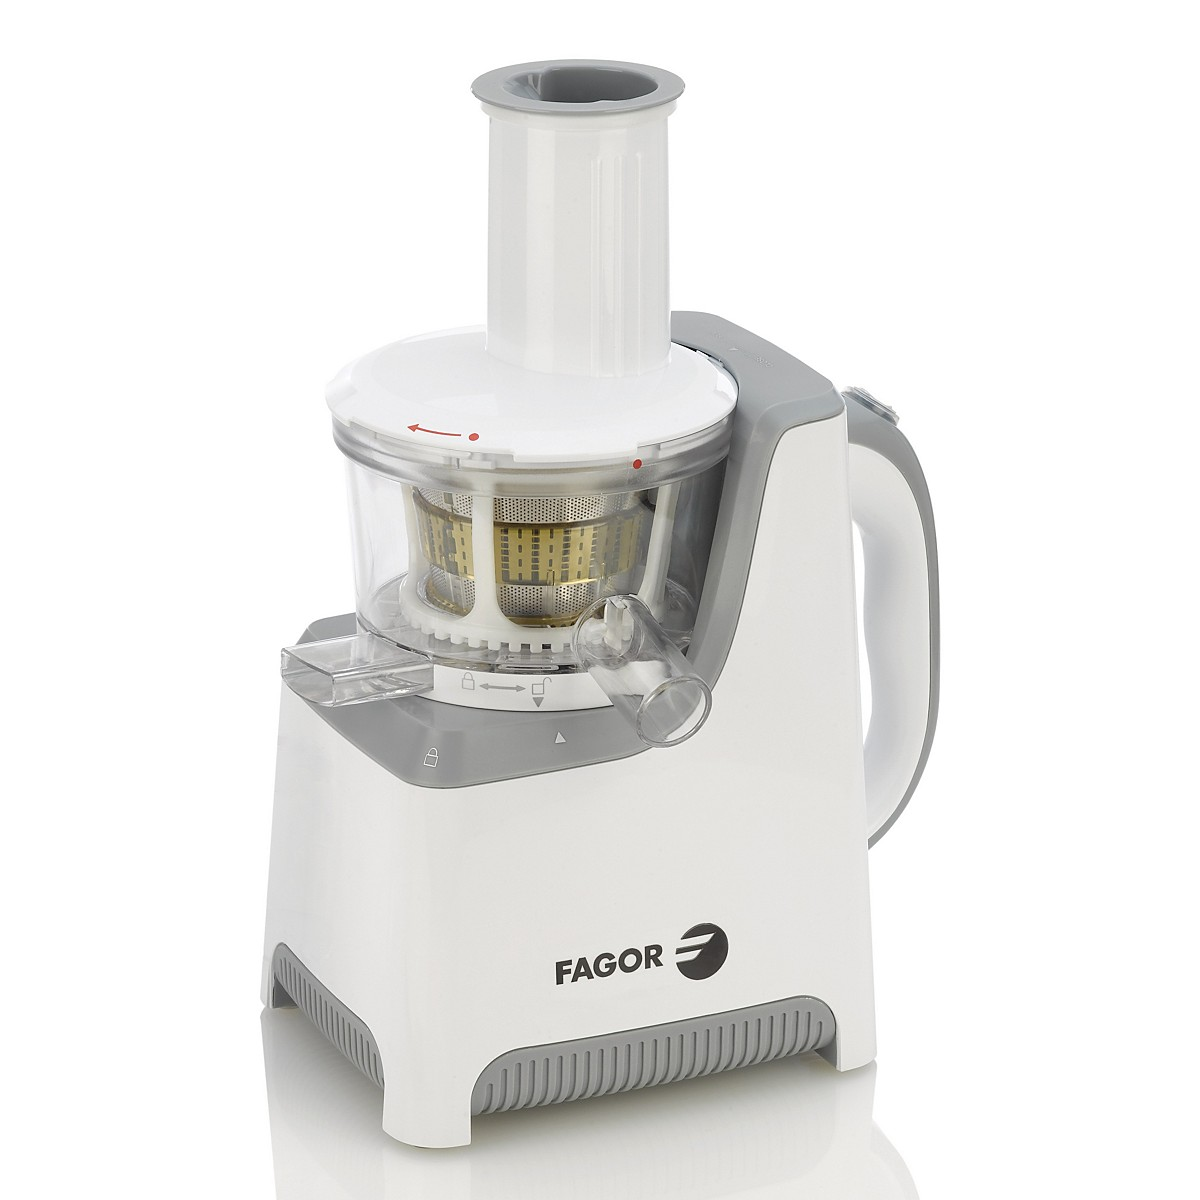 Bosch Vita Extractor Slow Juicer : Fagor Slow Juicer - Spoil the Cook